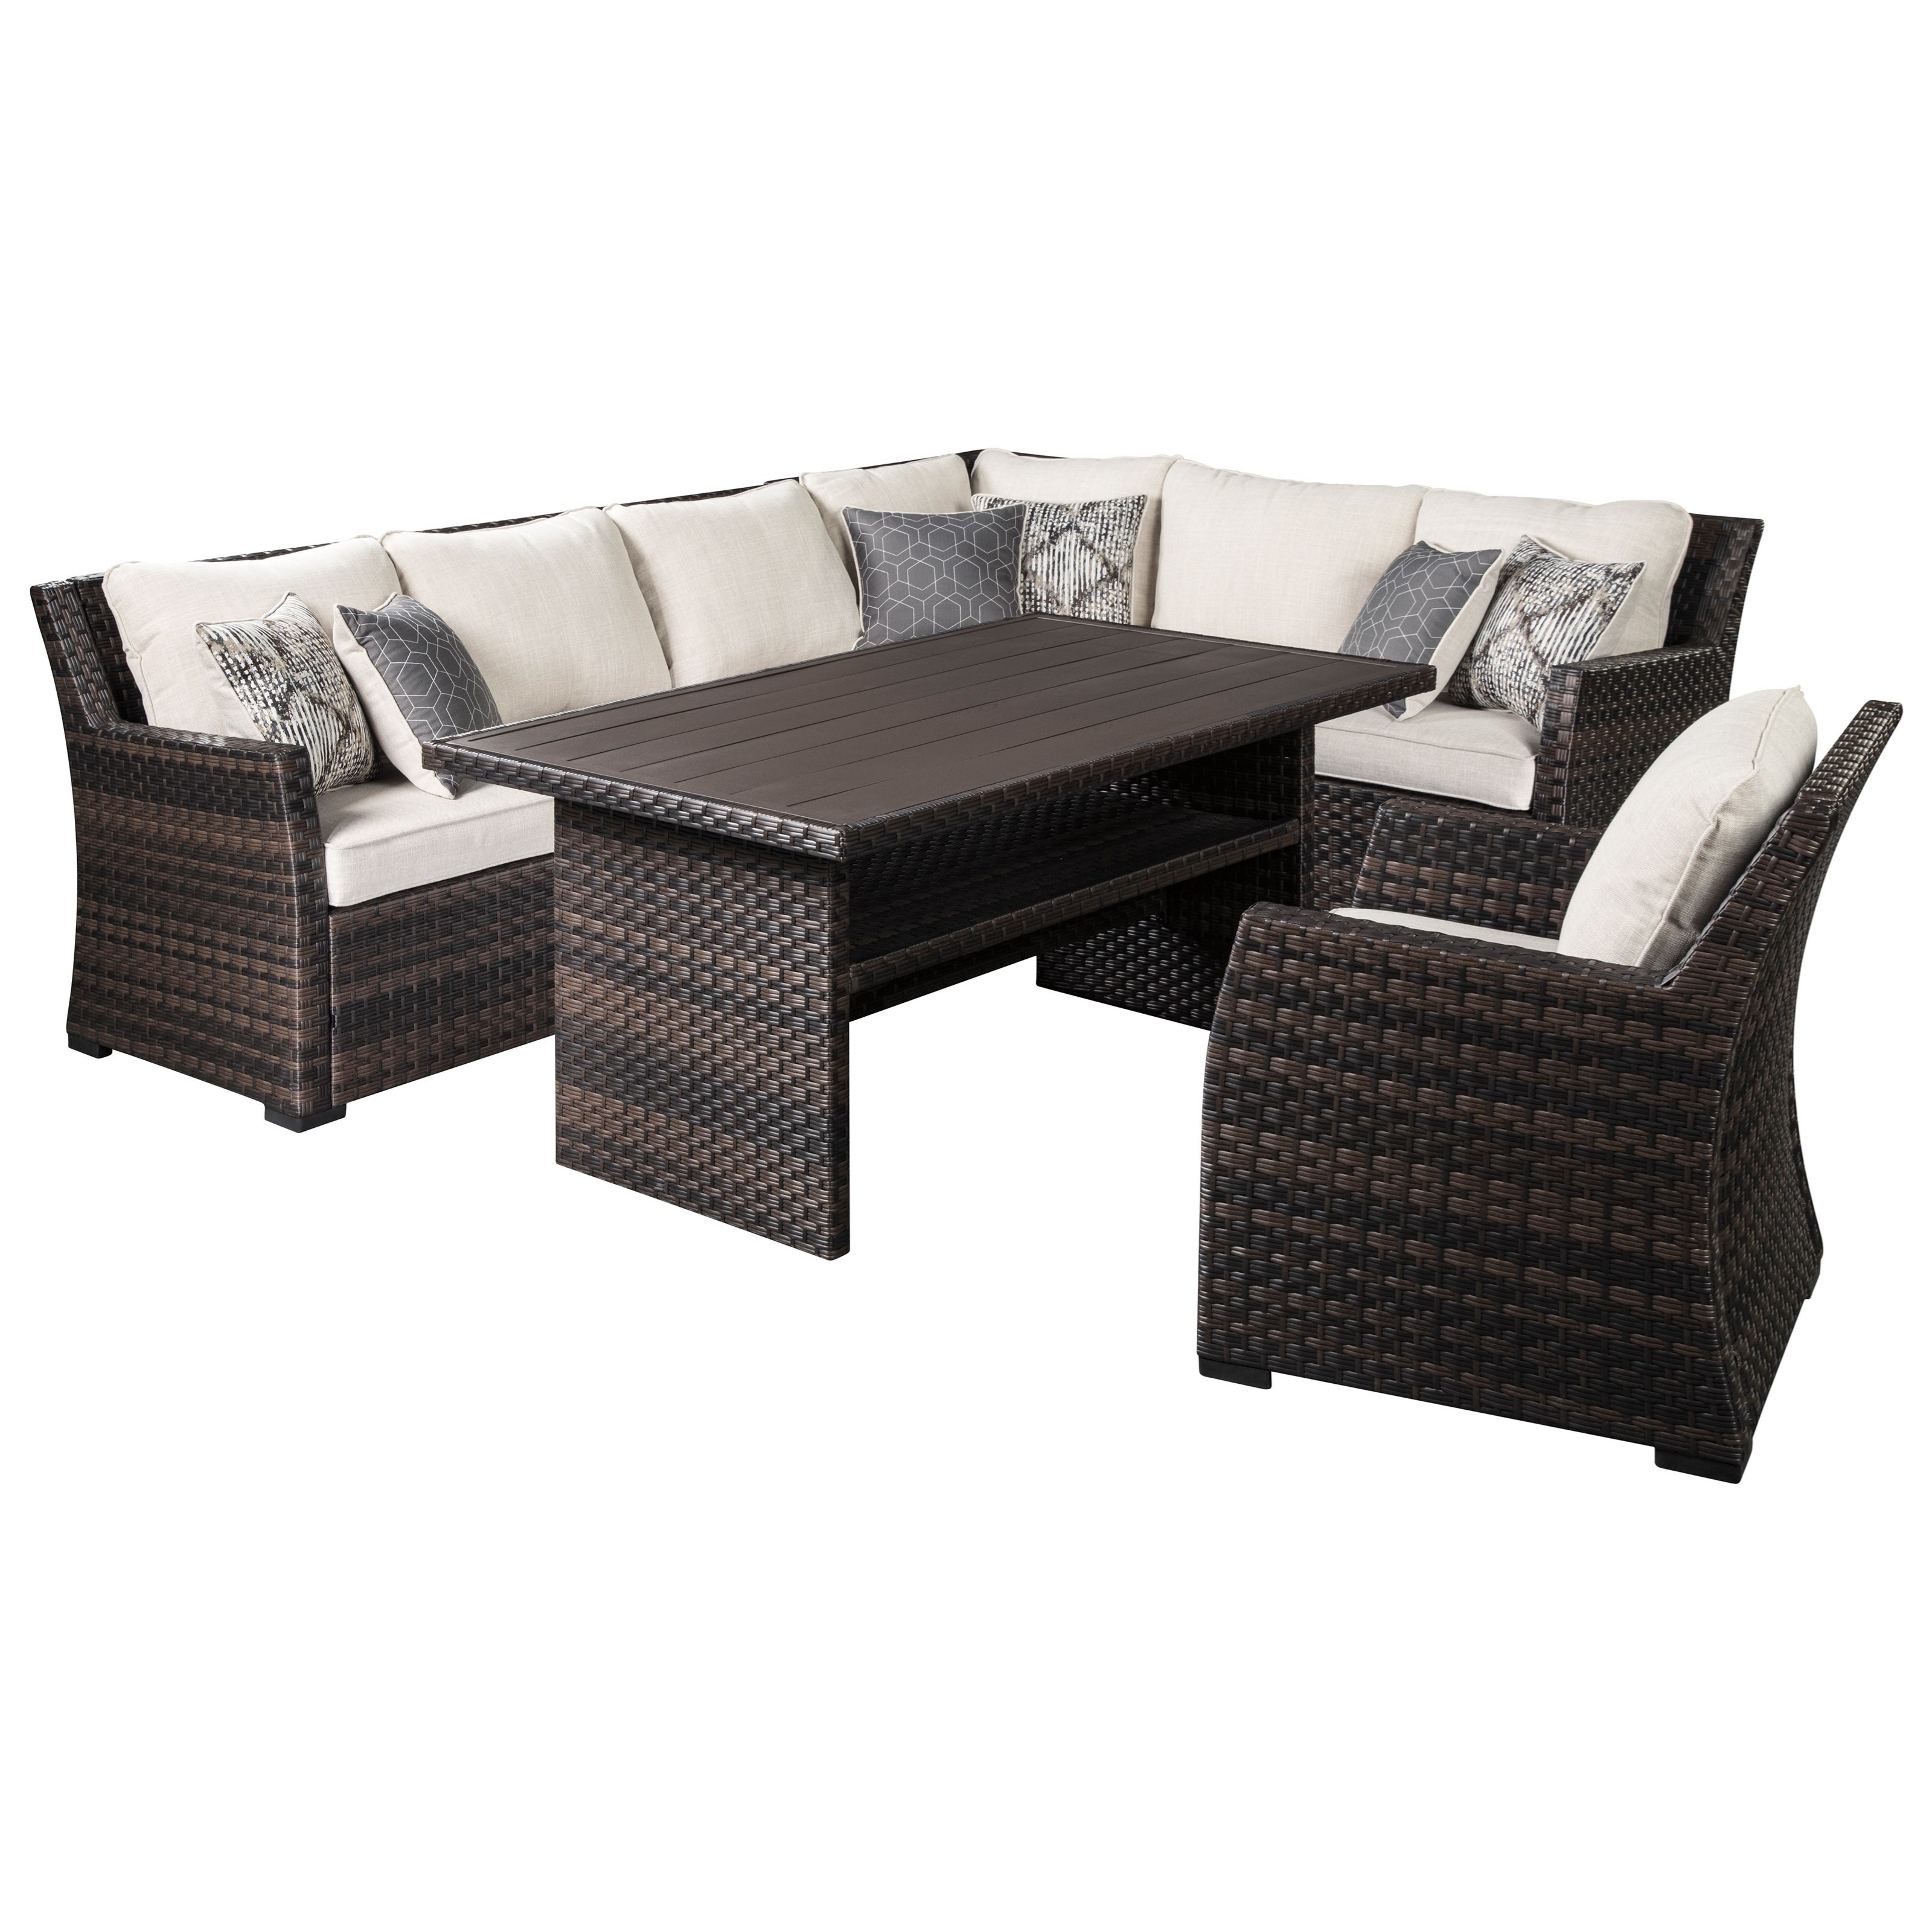 easy isle outdoor sectional with table lounge chair